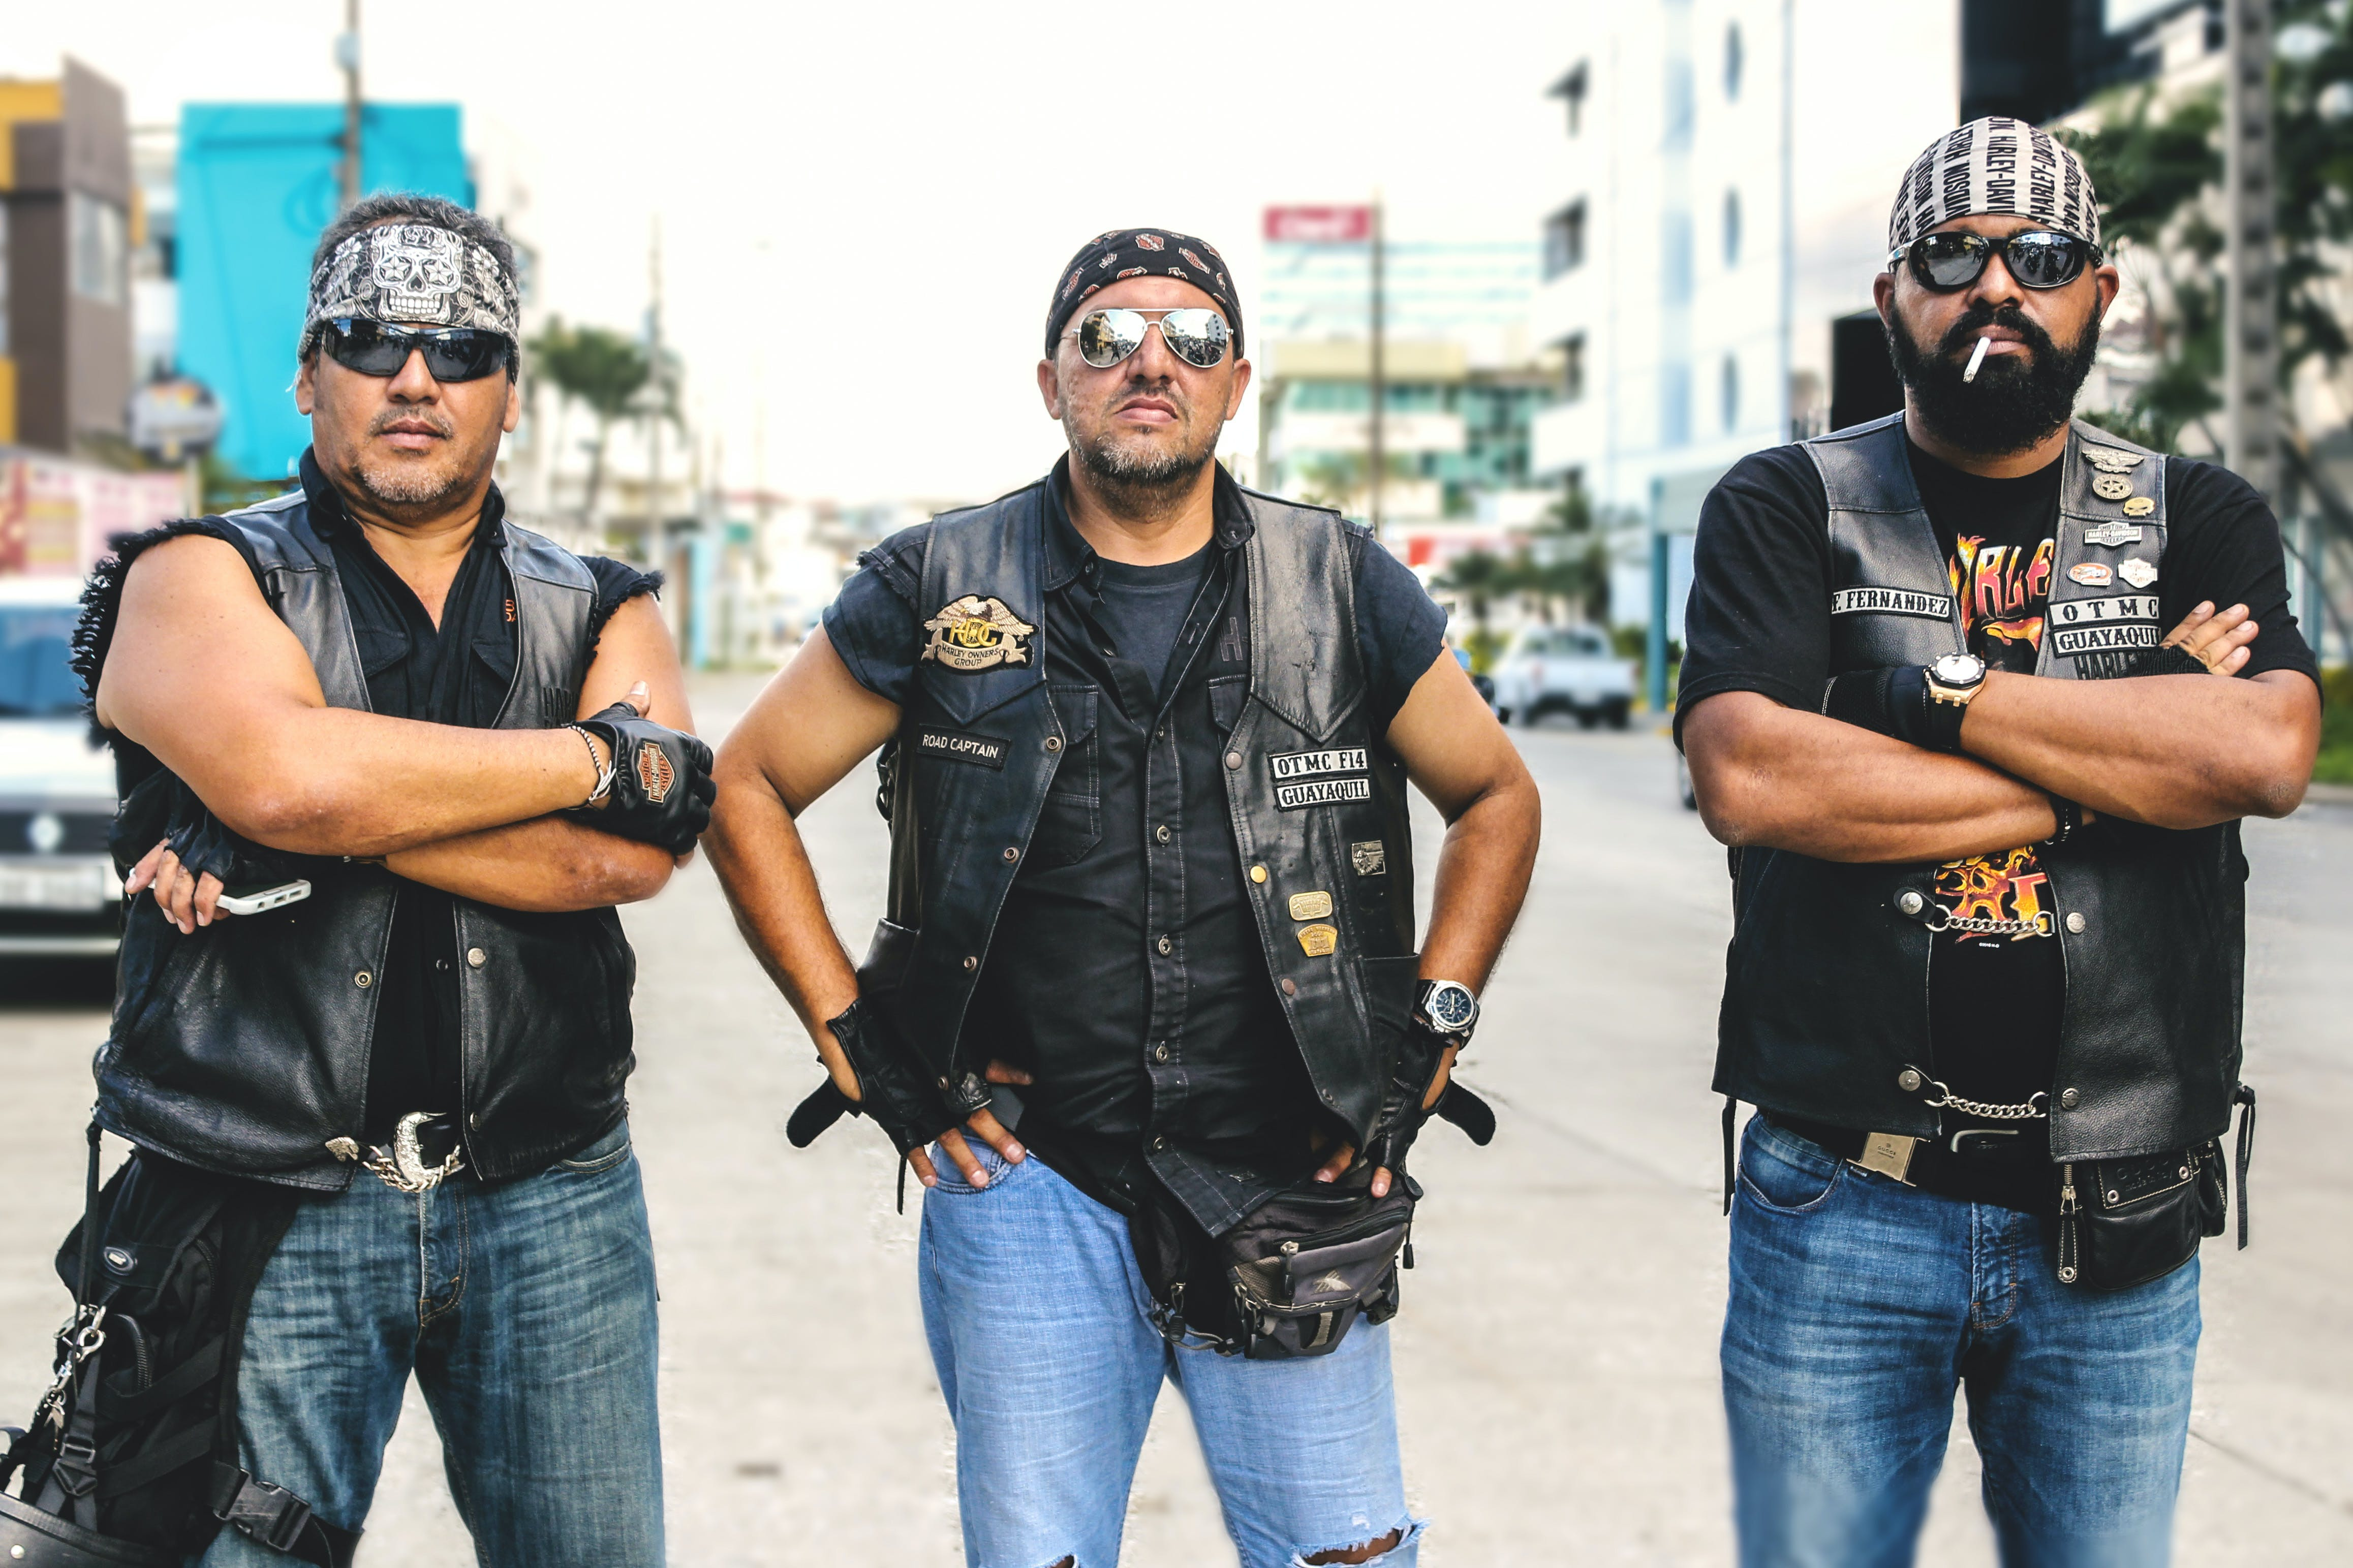 Three Person Wearing Black Leather Vest